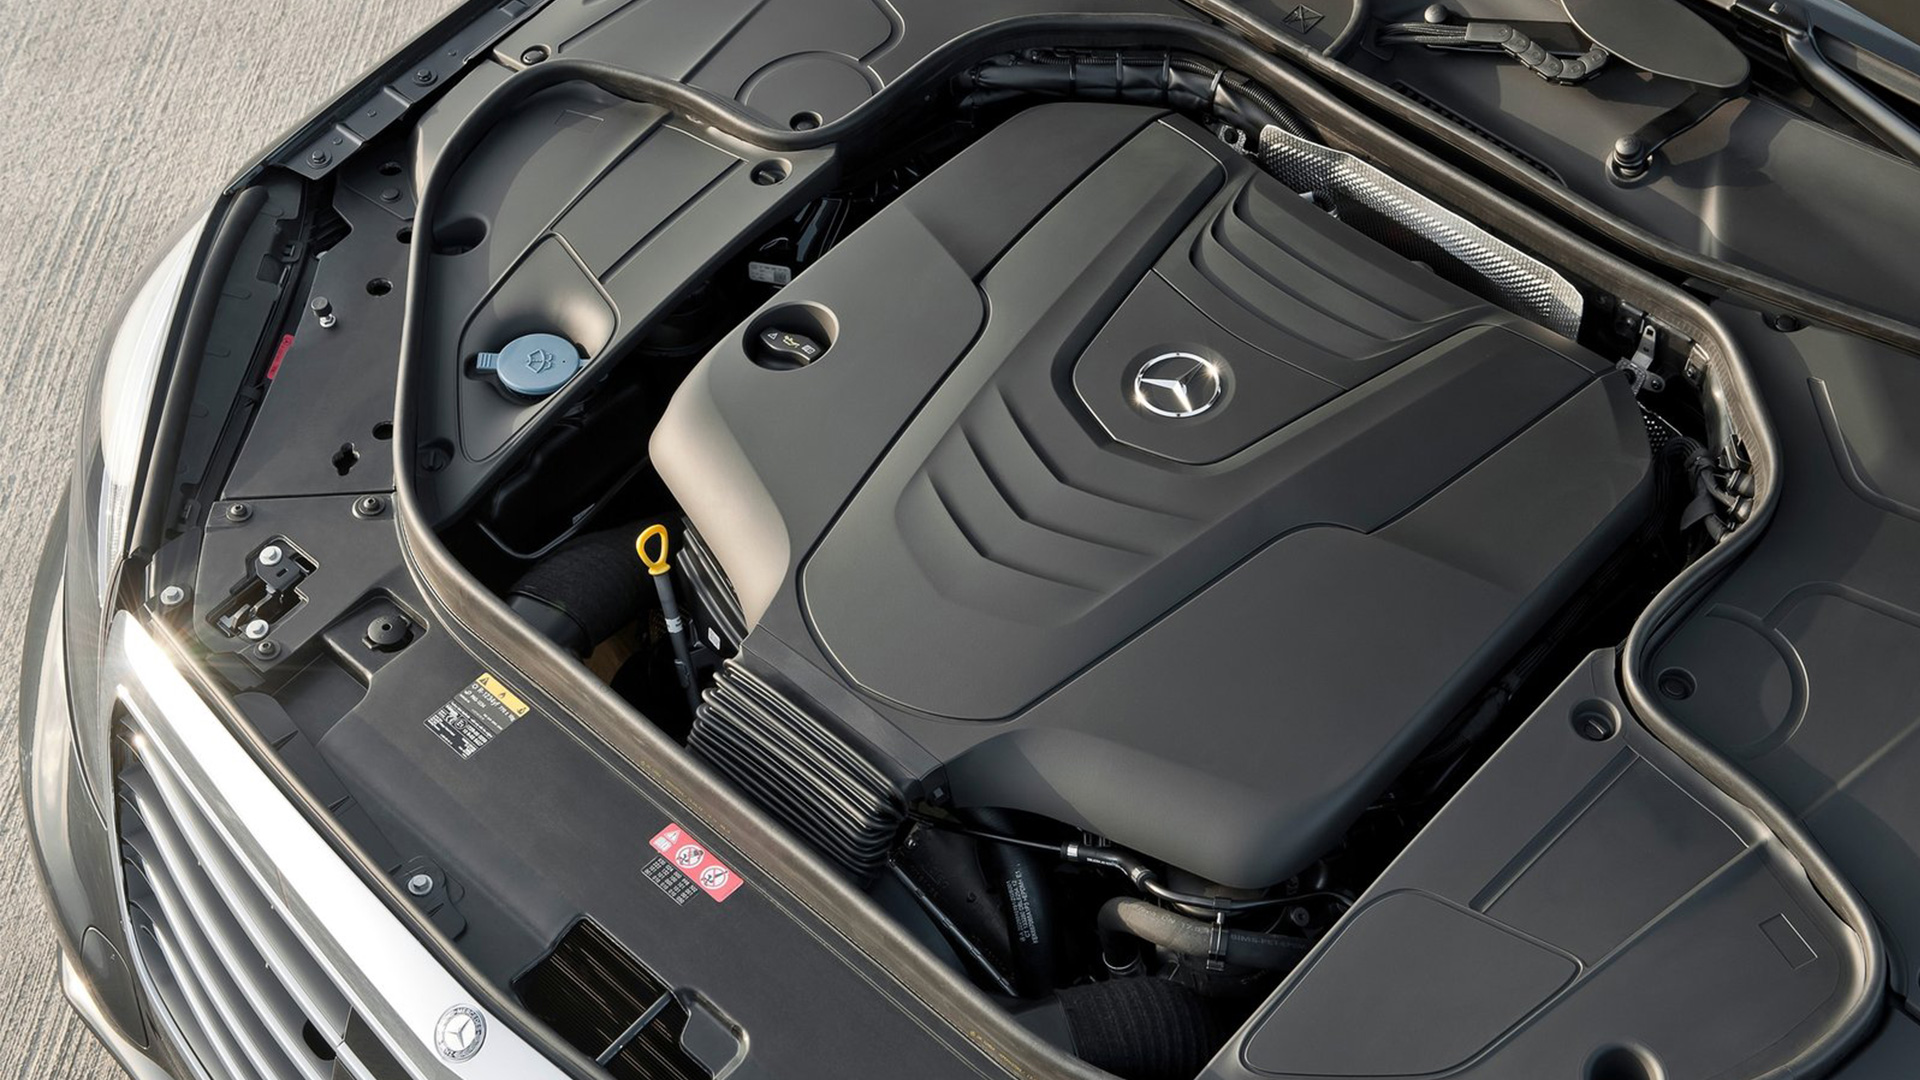 Mercedes-Benz S-Class engine #4